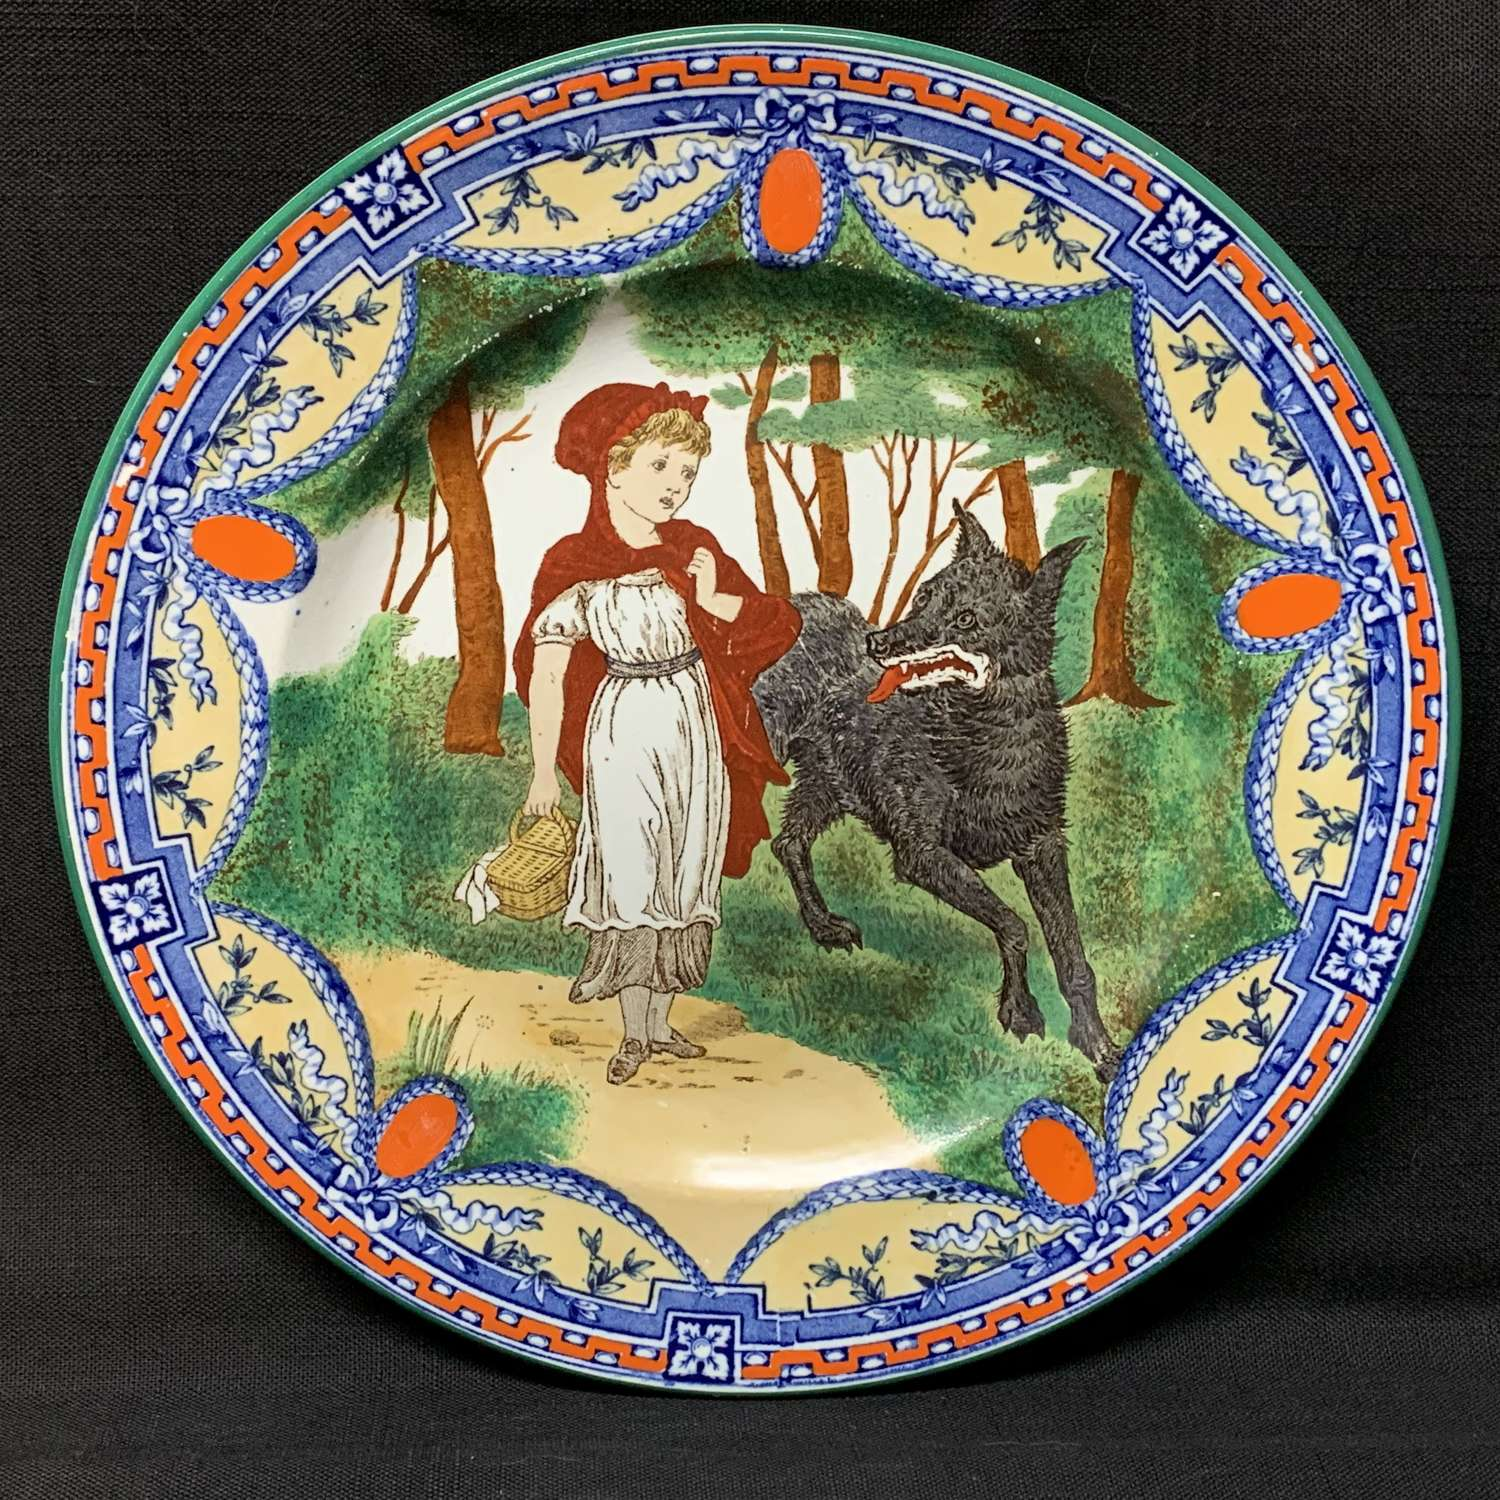 1879 ~ Wedgwood Transferware Plate ~ Red Riding Hood and Wolf